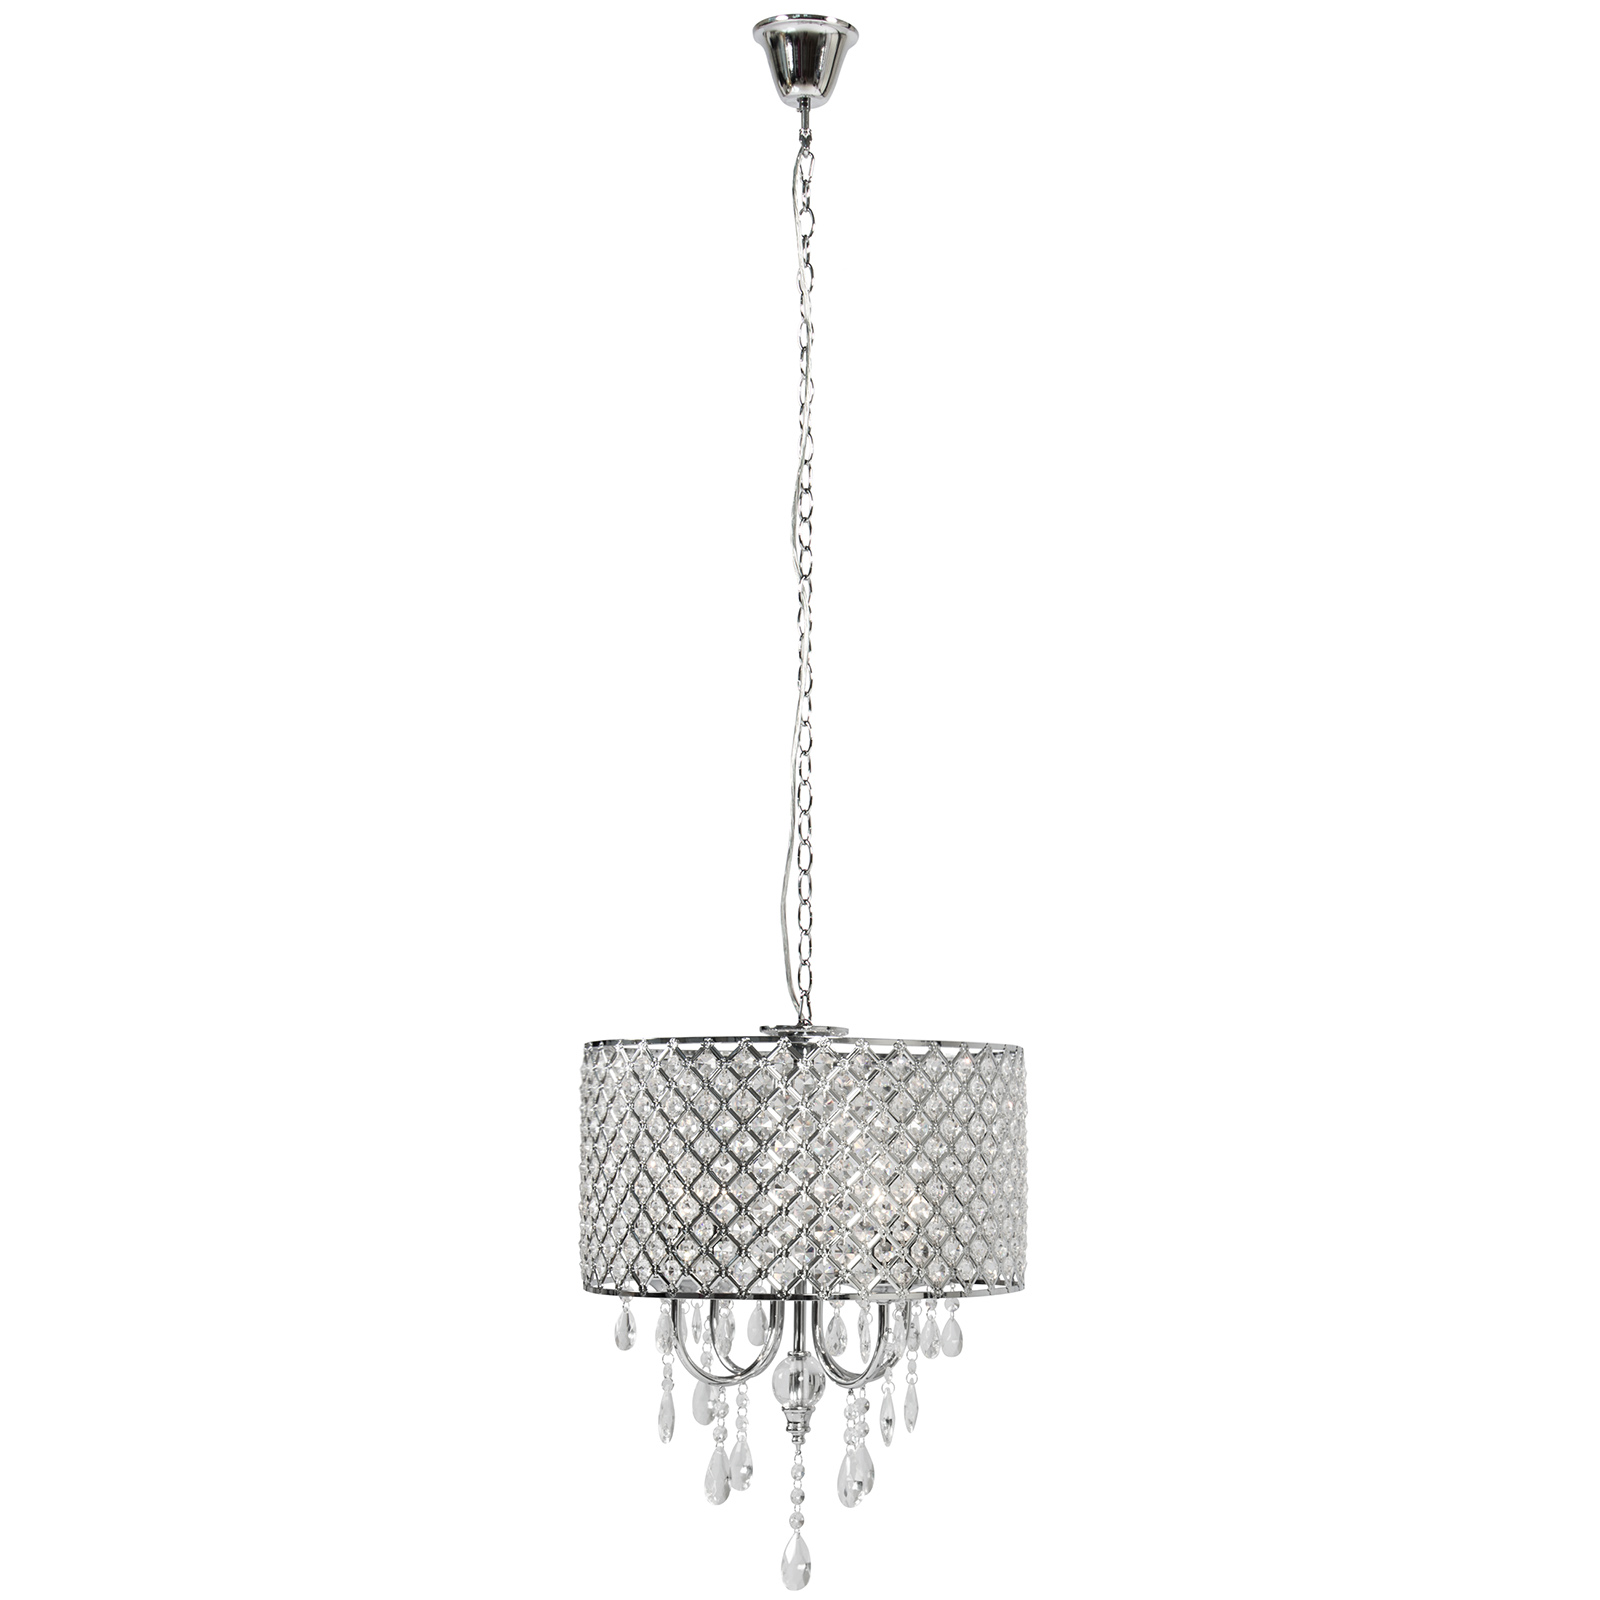 Bcp Crystal Chandelier Ceiling Lamp